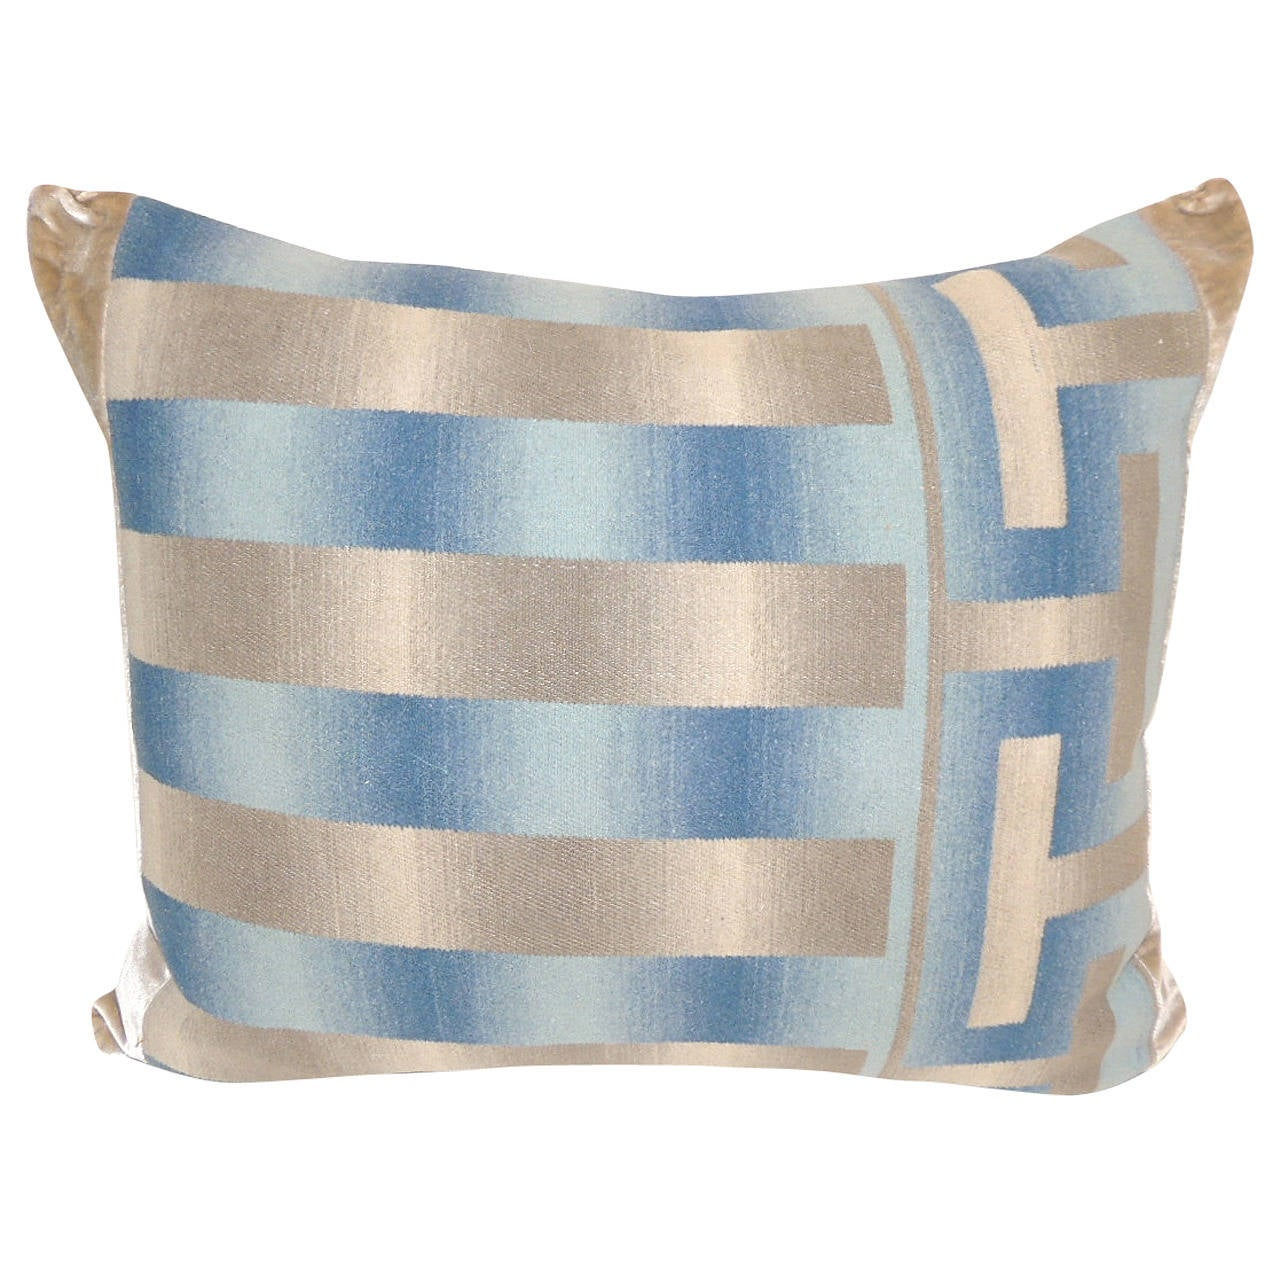 French Blue Throw Pillows : French Blue Wool Pillow at 1stdibs